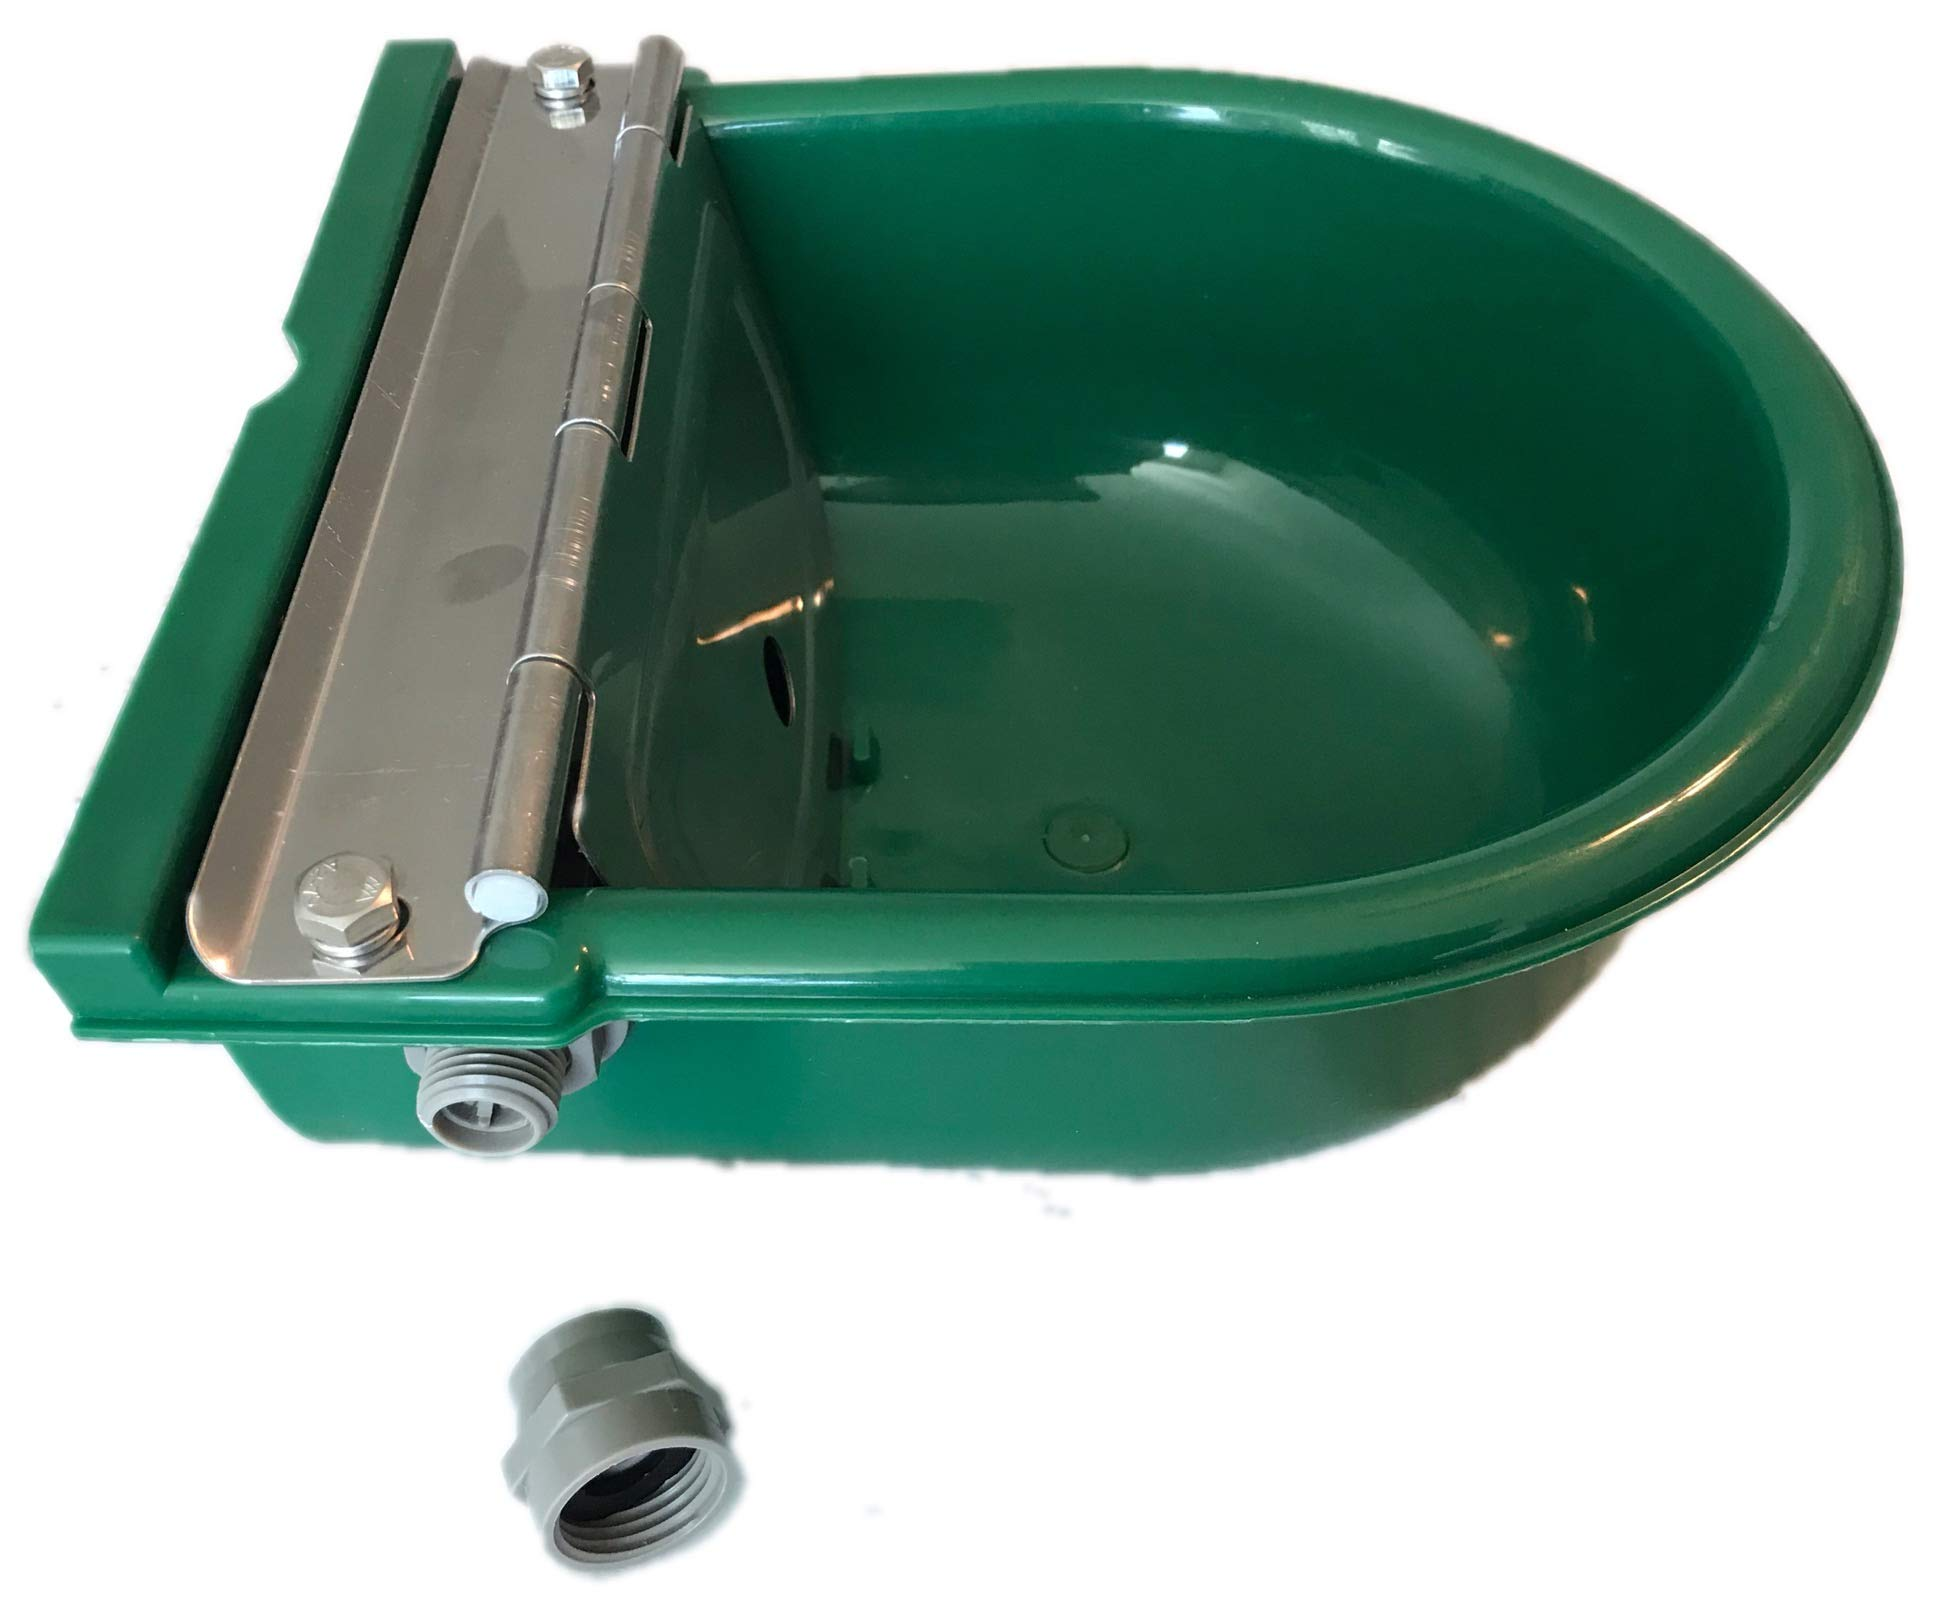 rabbitnipples.com Large Automatic Waterer for Horses, Cows, Goats and Other Live Stock by rabbitnipples.com